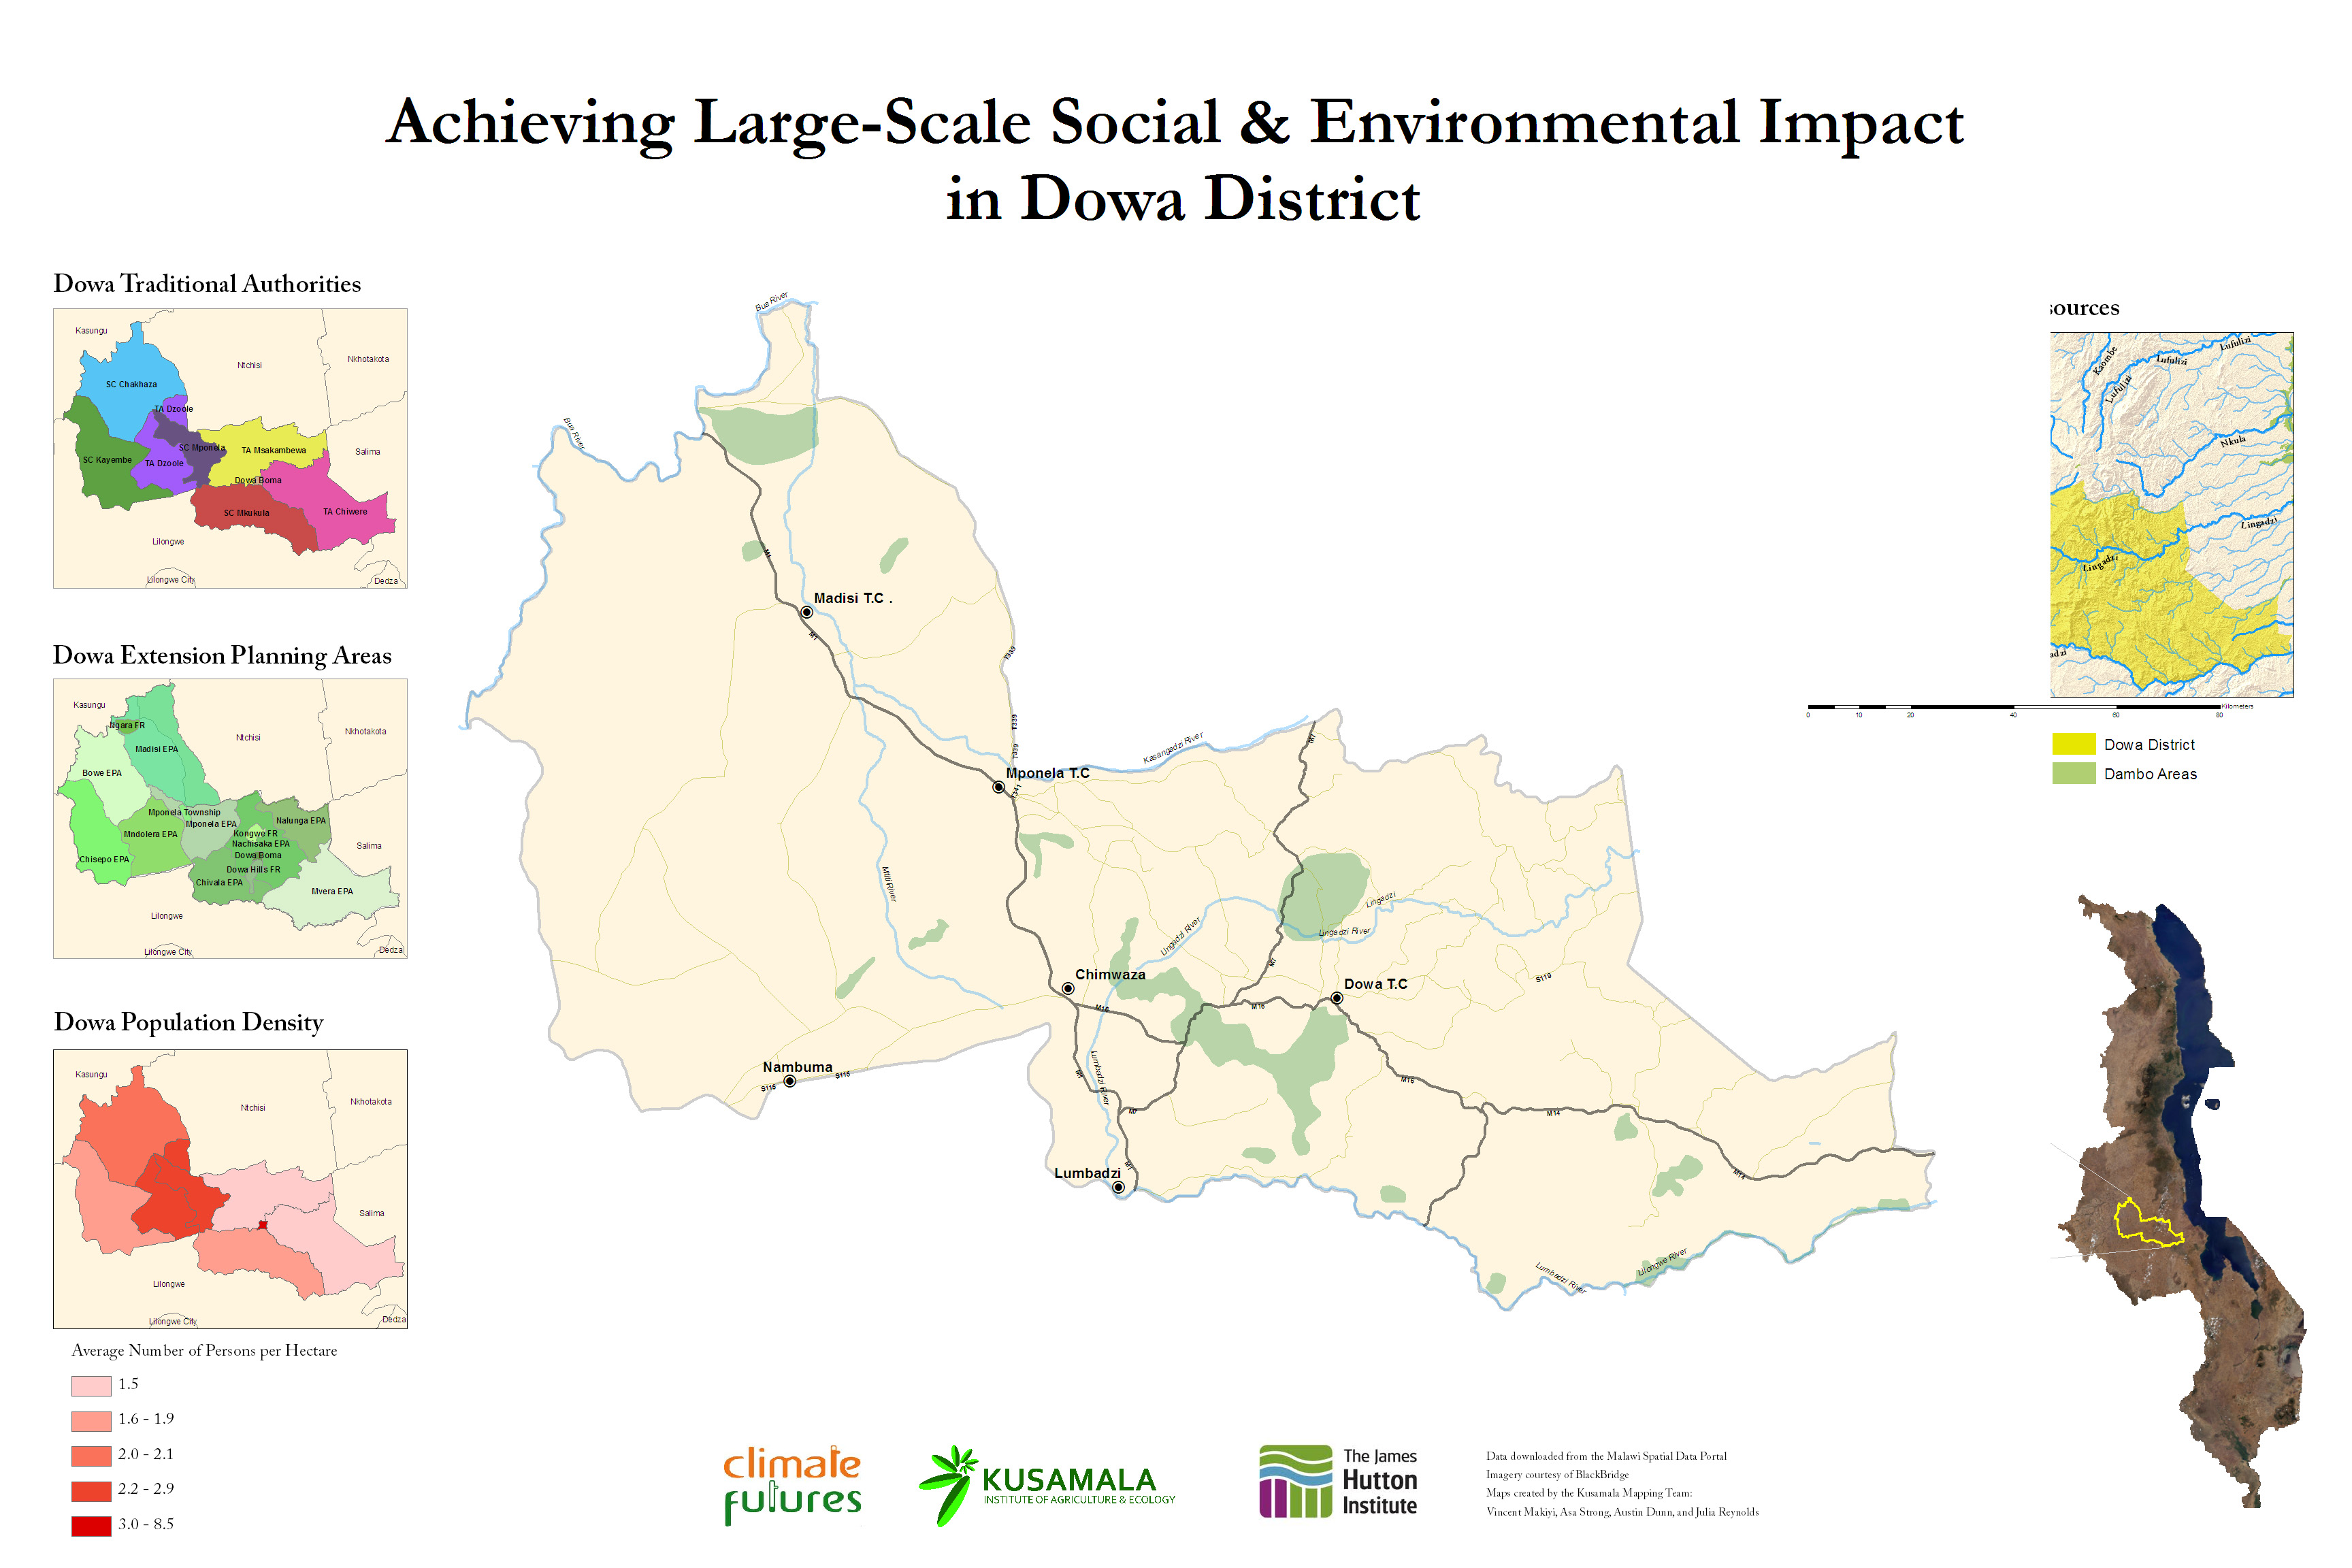 Achieving Large-Scale Social & Environmental Impact in Dowa District